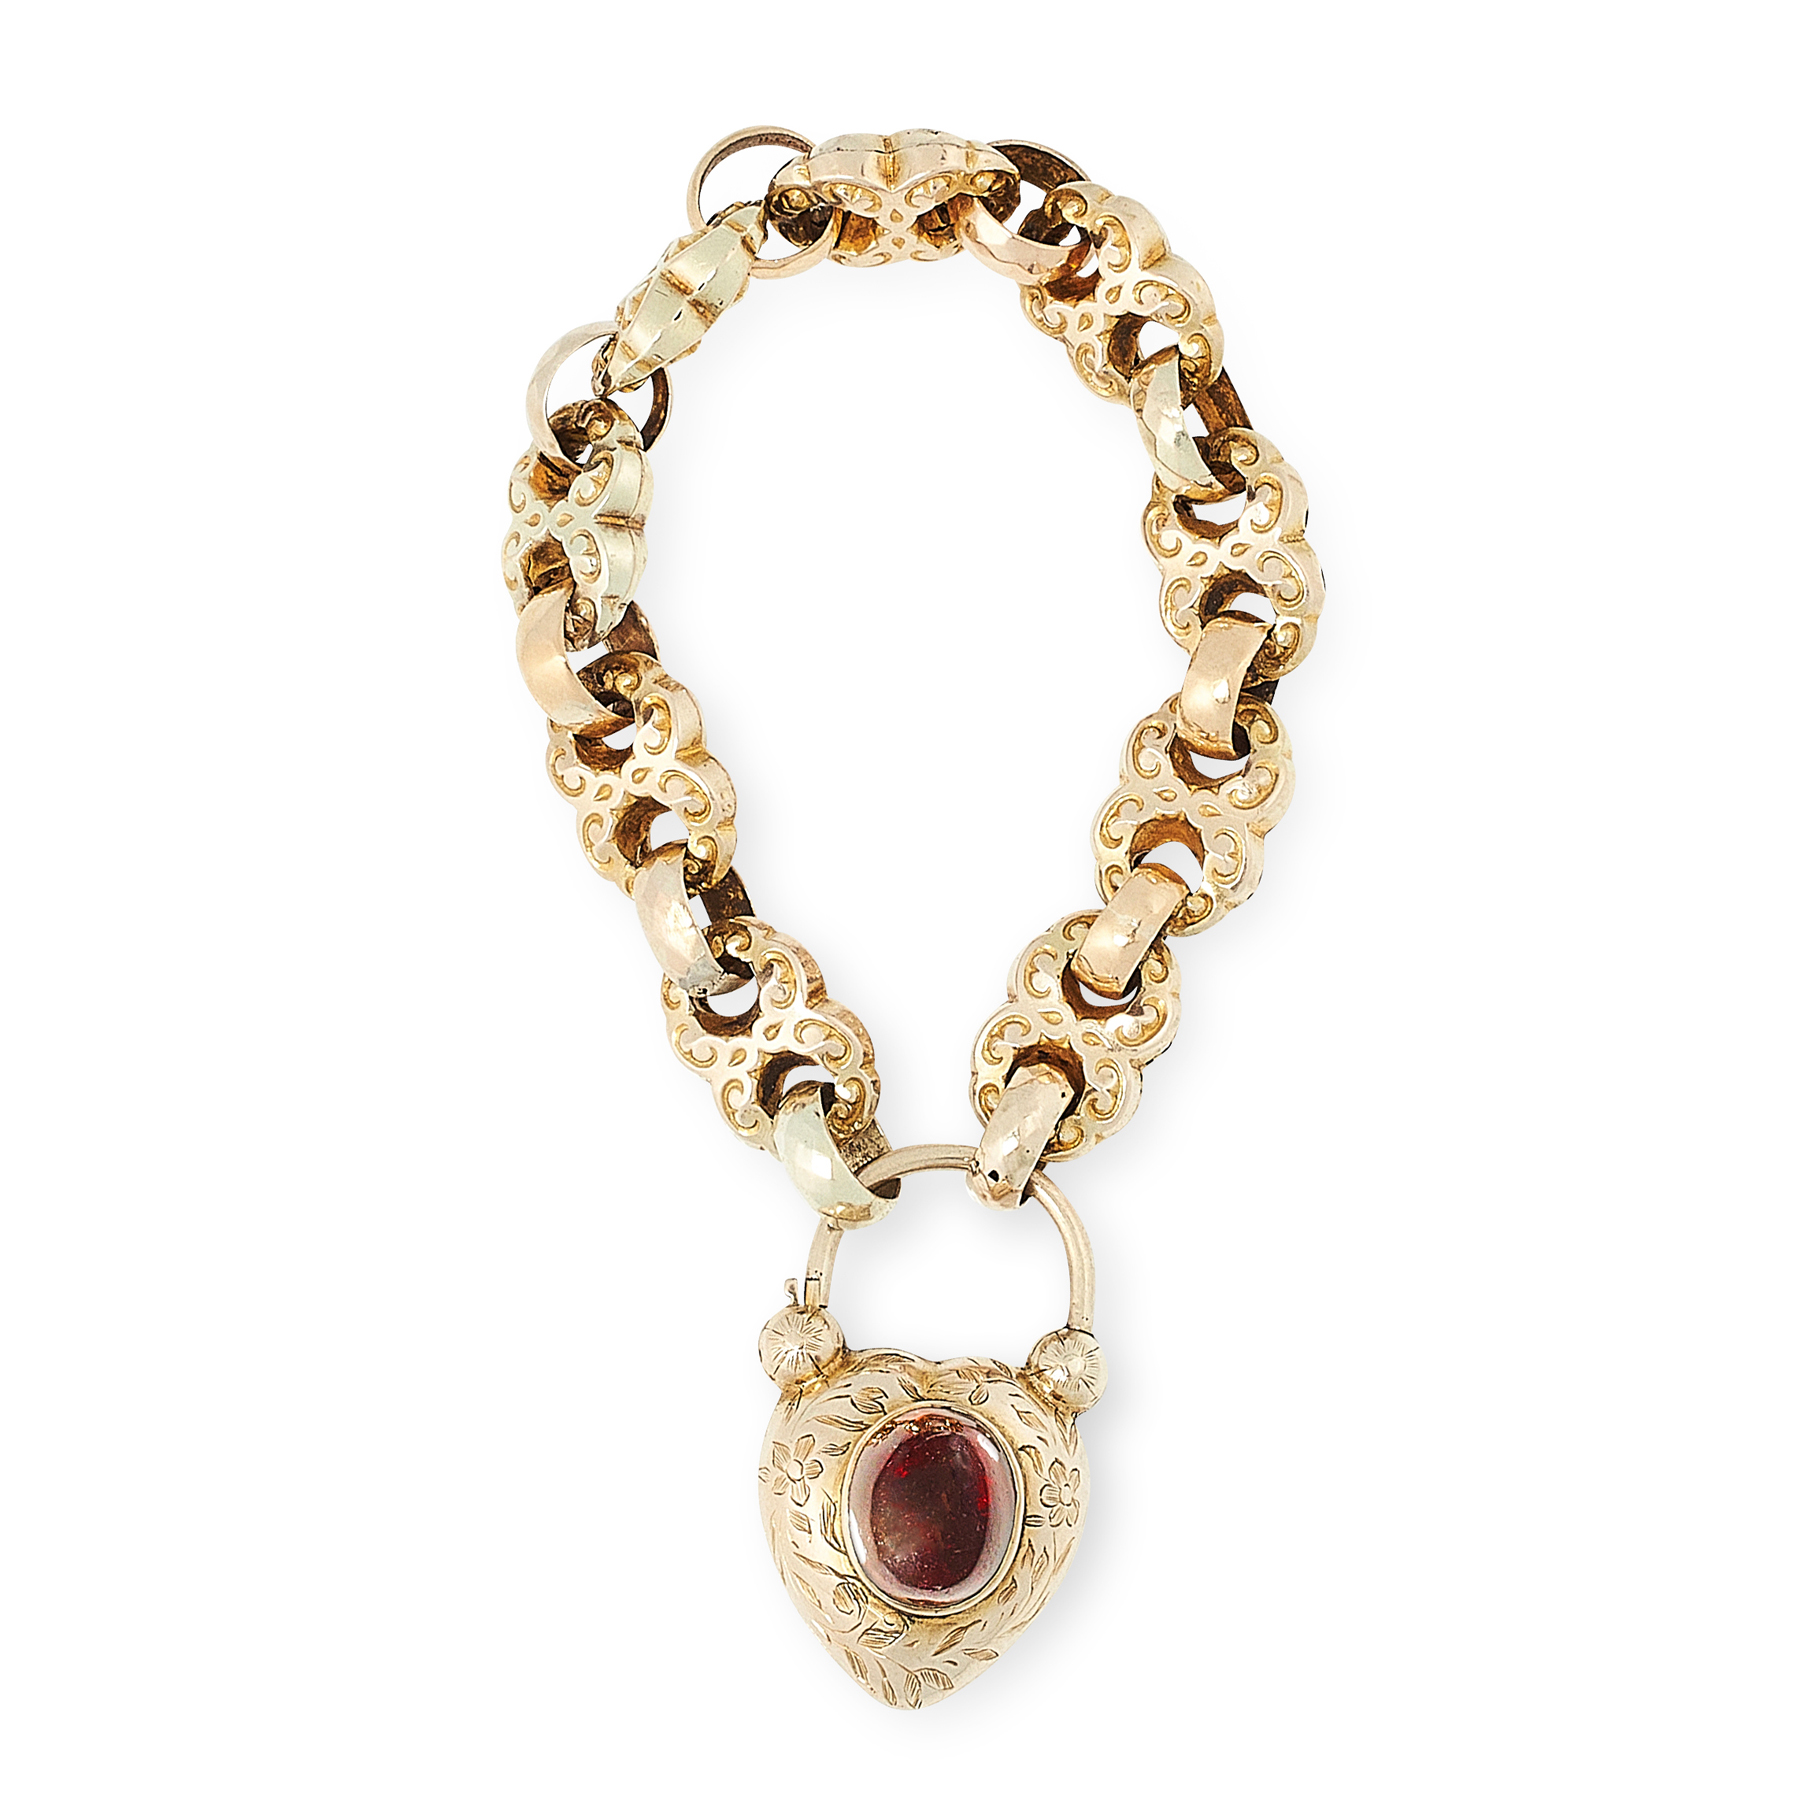 AN ANTIQUE GARNET AND HAIRWORK SWEETHEART LOCKET BRACELET, 19TH CENTURY in yellow gold, formed of